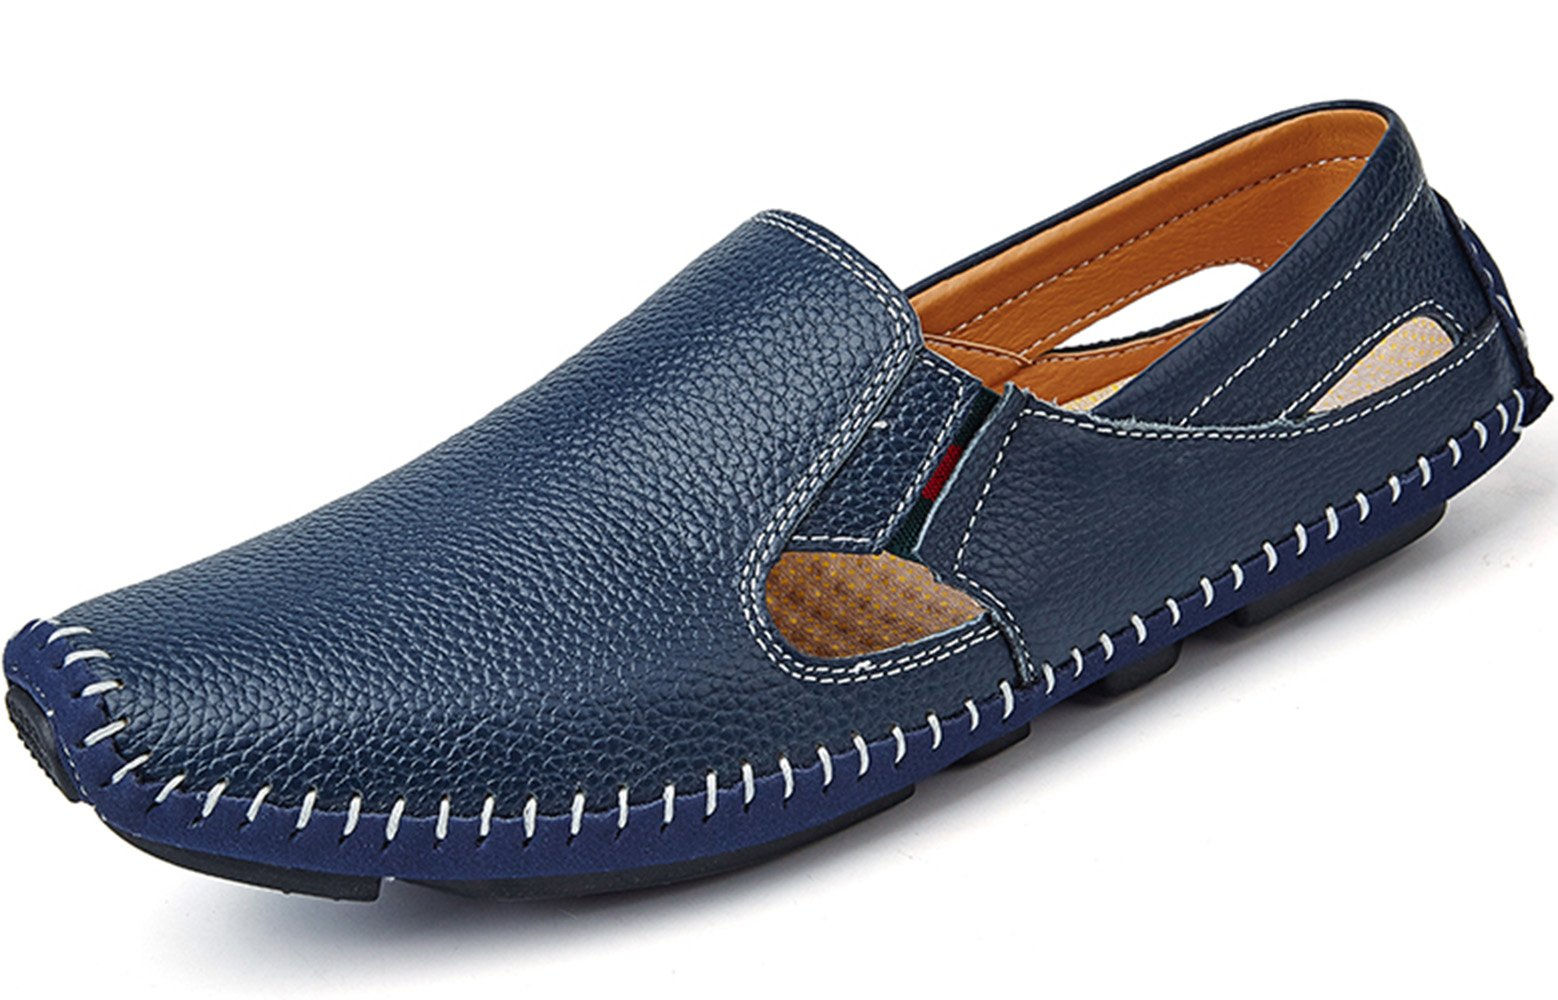 YZHYXS Men Leather Driving Shoes Fashion Slippers Casual Slip on Walking Loafers Shoes Summer Blue Size 11 (932-blue-45)